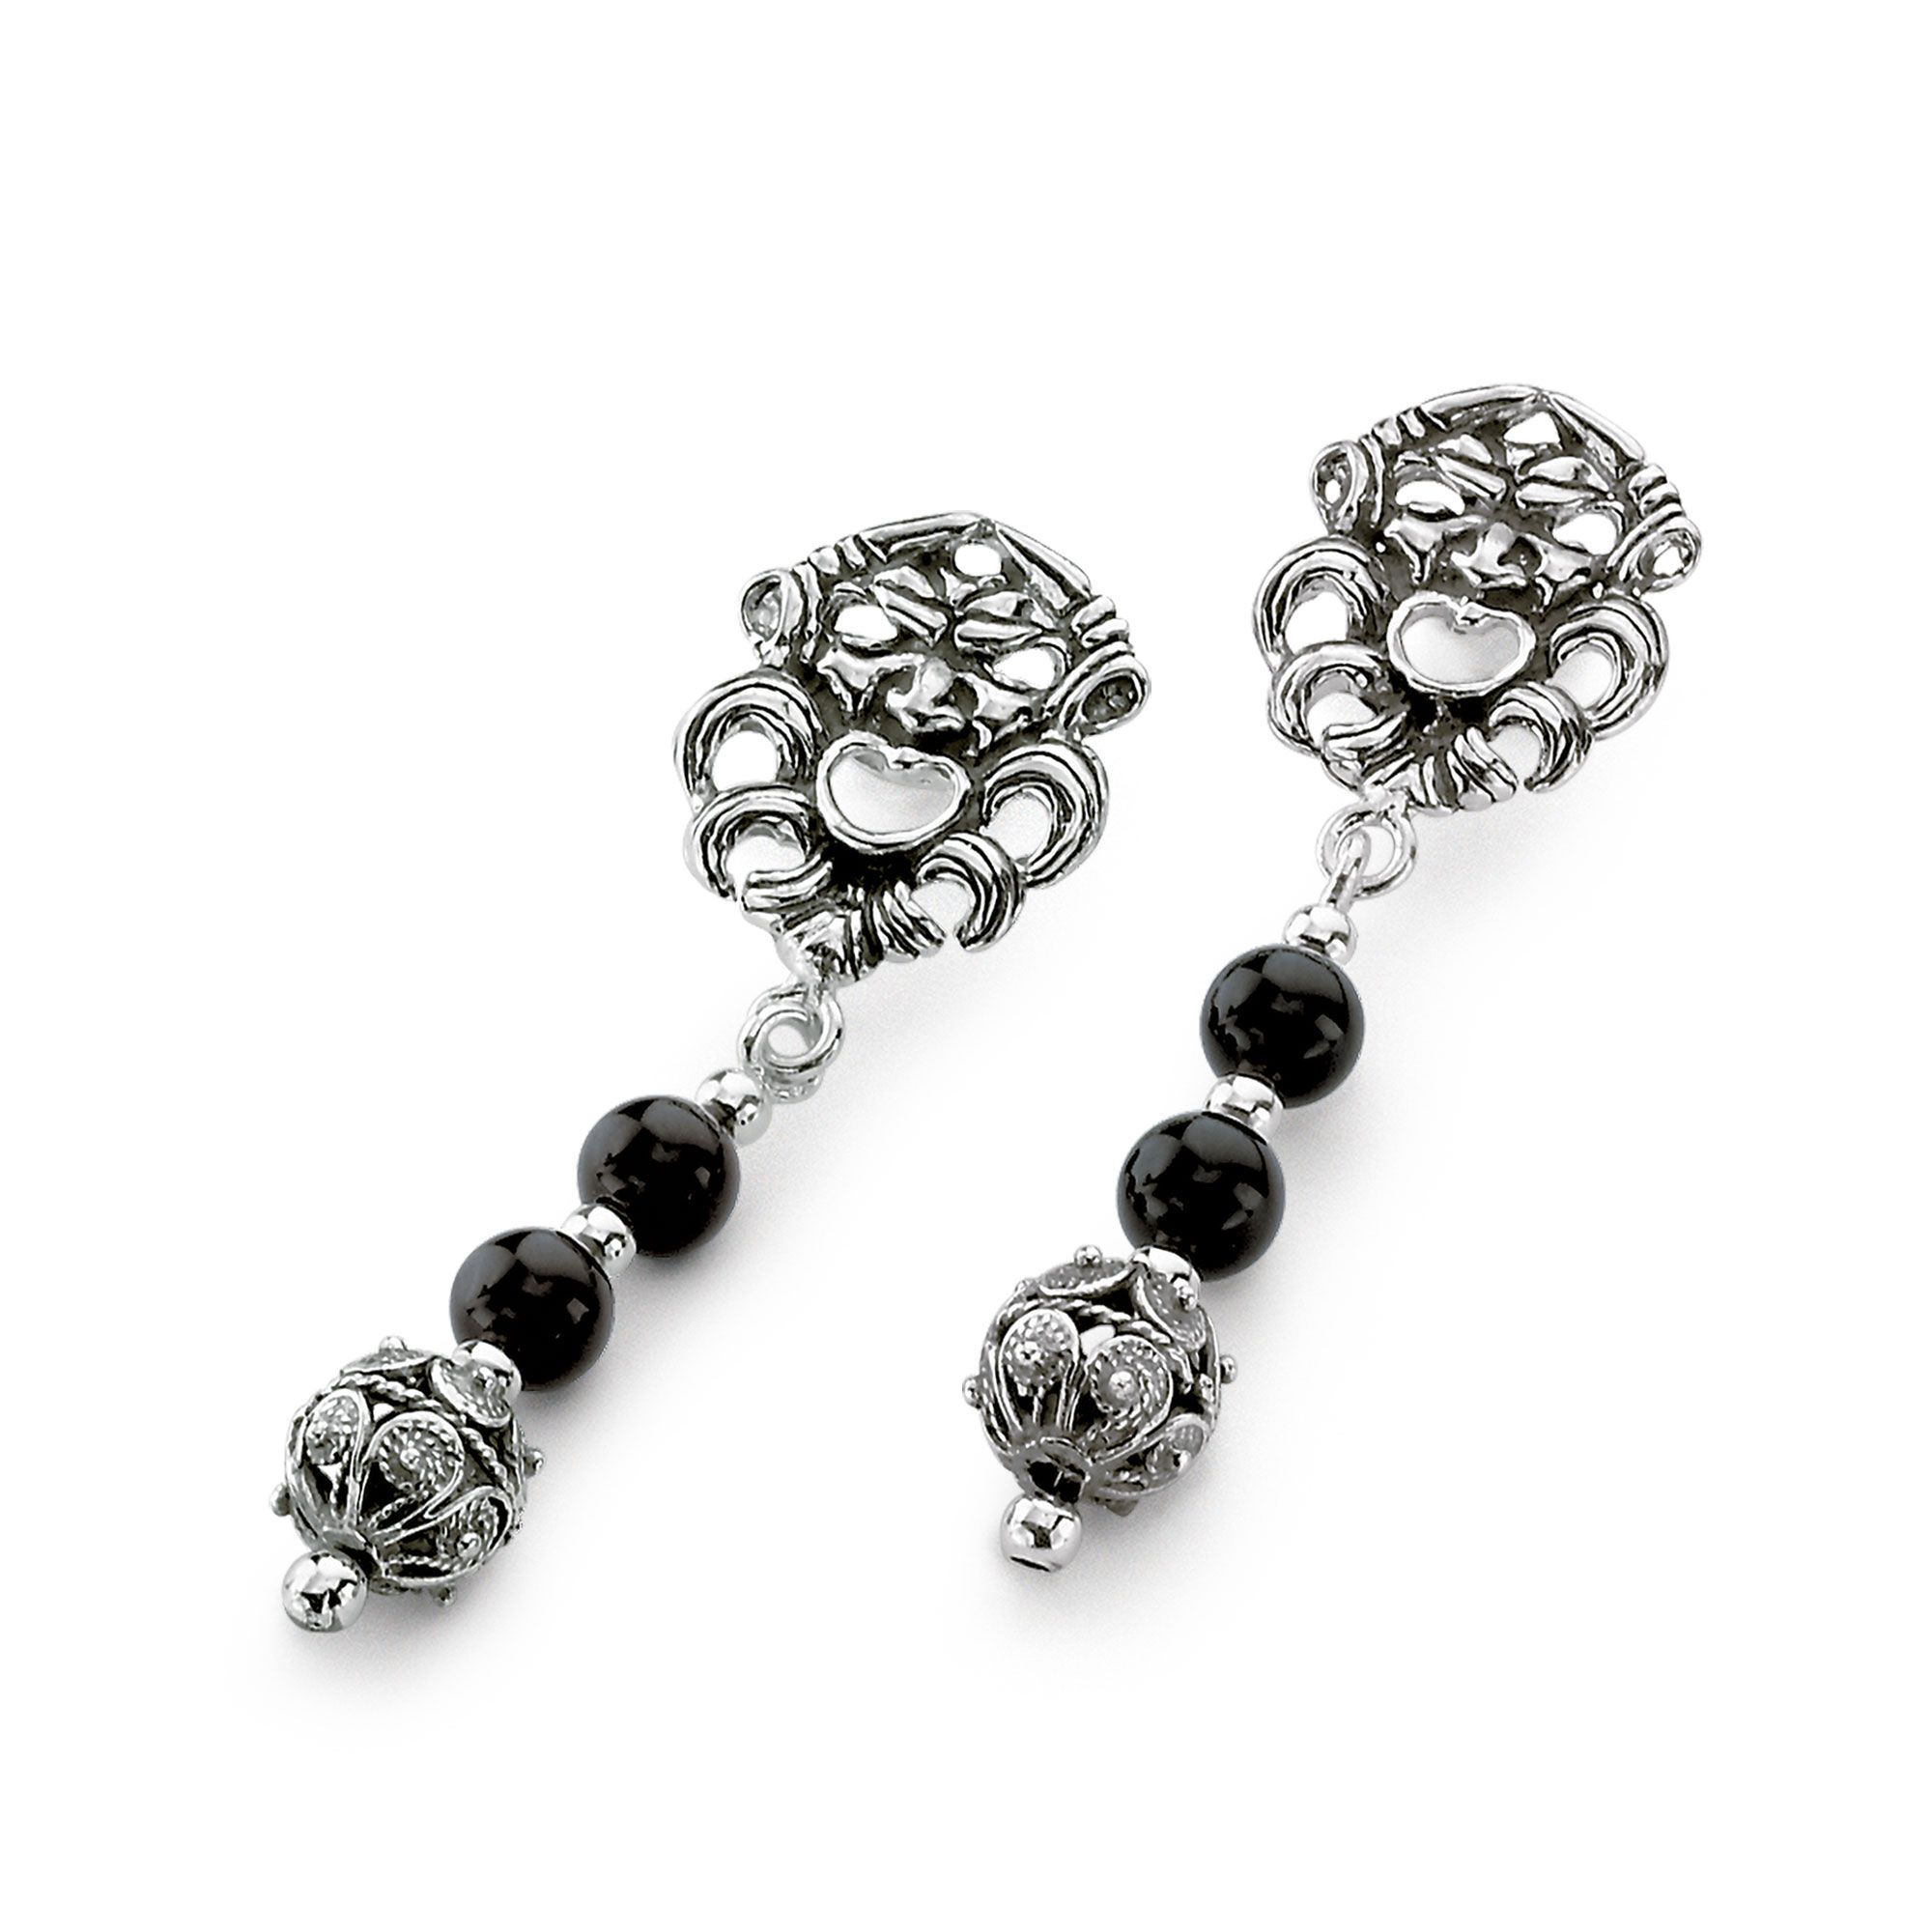 Earrings with Masks (31222)